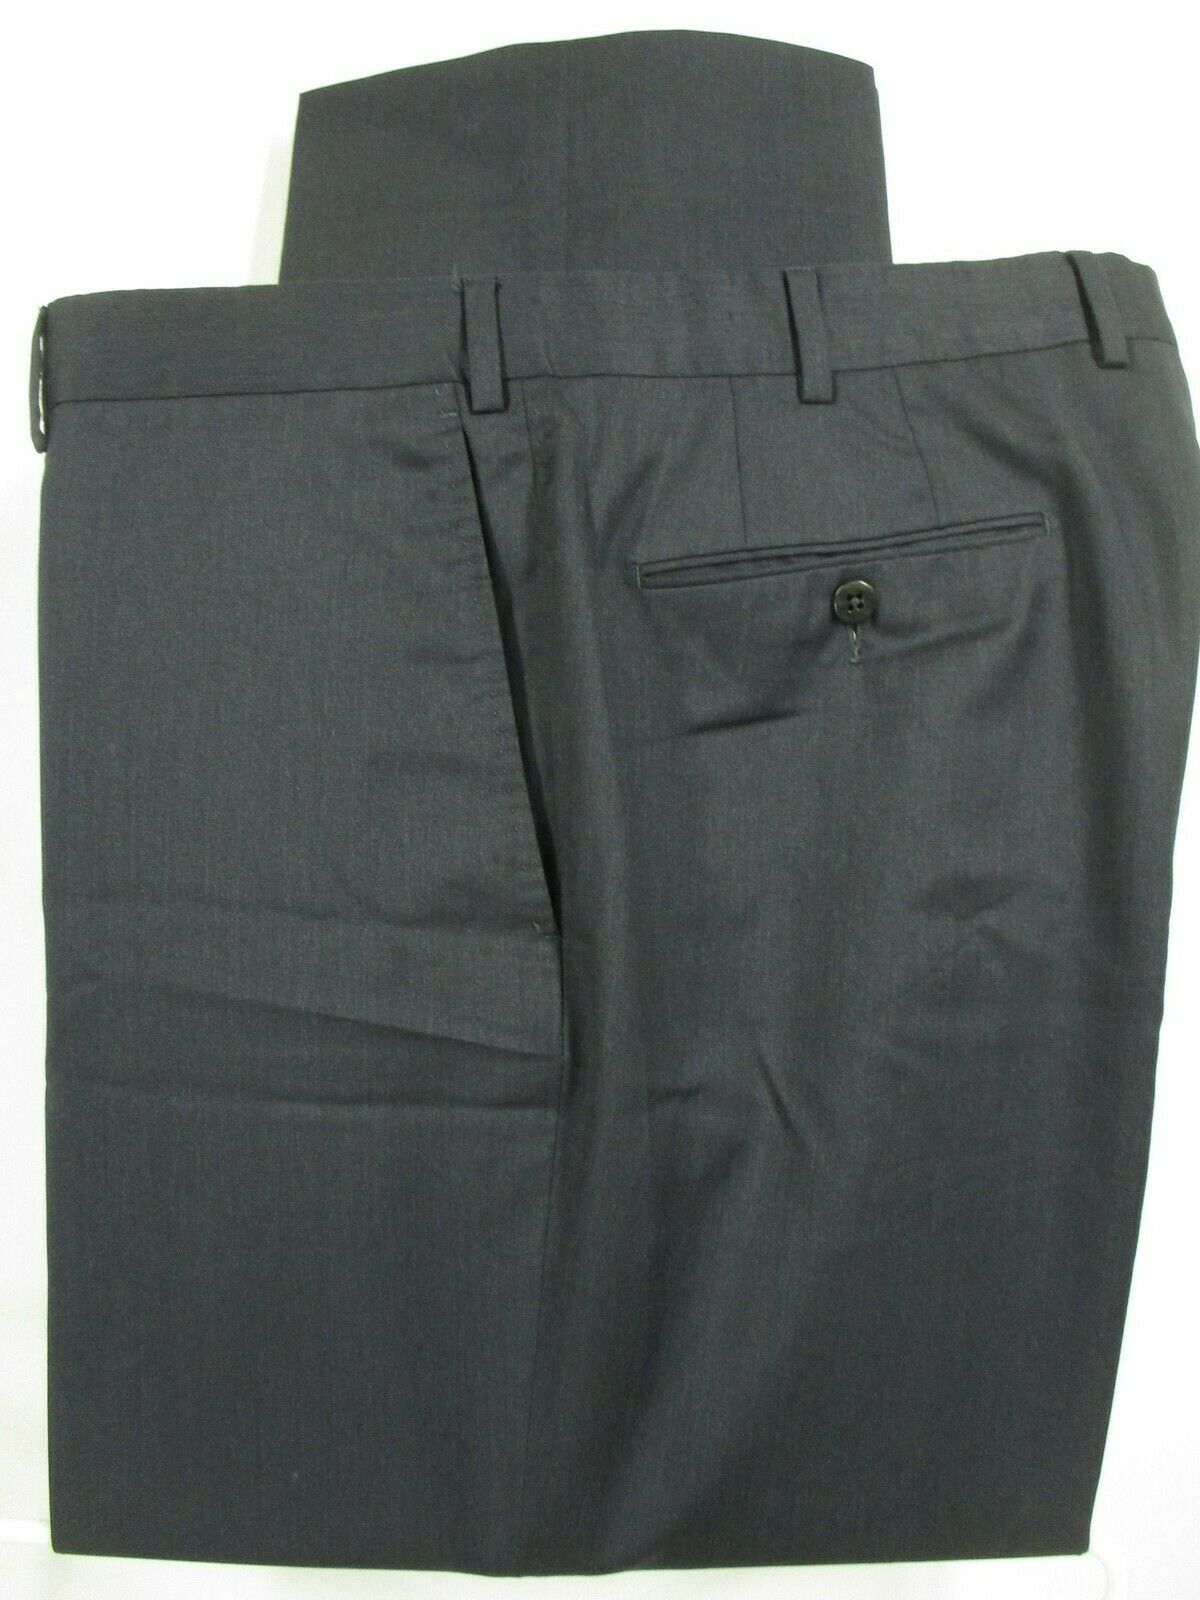 Ermenegildo Zegna Mens Charcoal Flat Front Wool Dress Pants 37x27.5 Recent